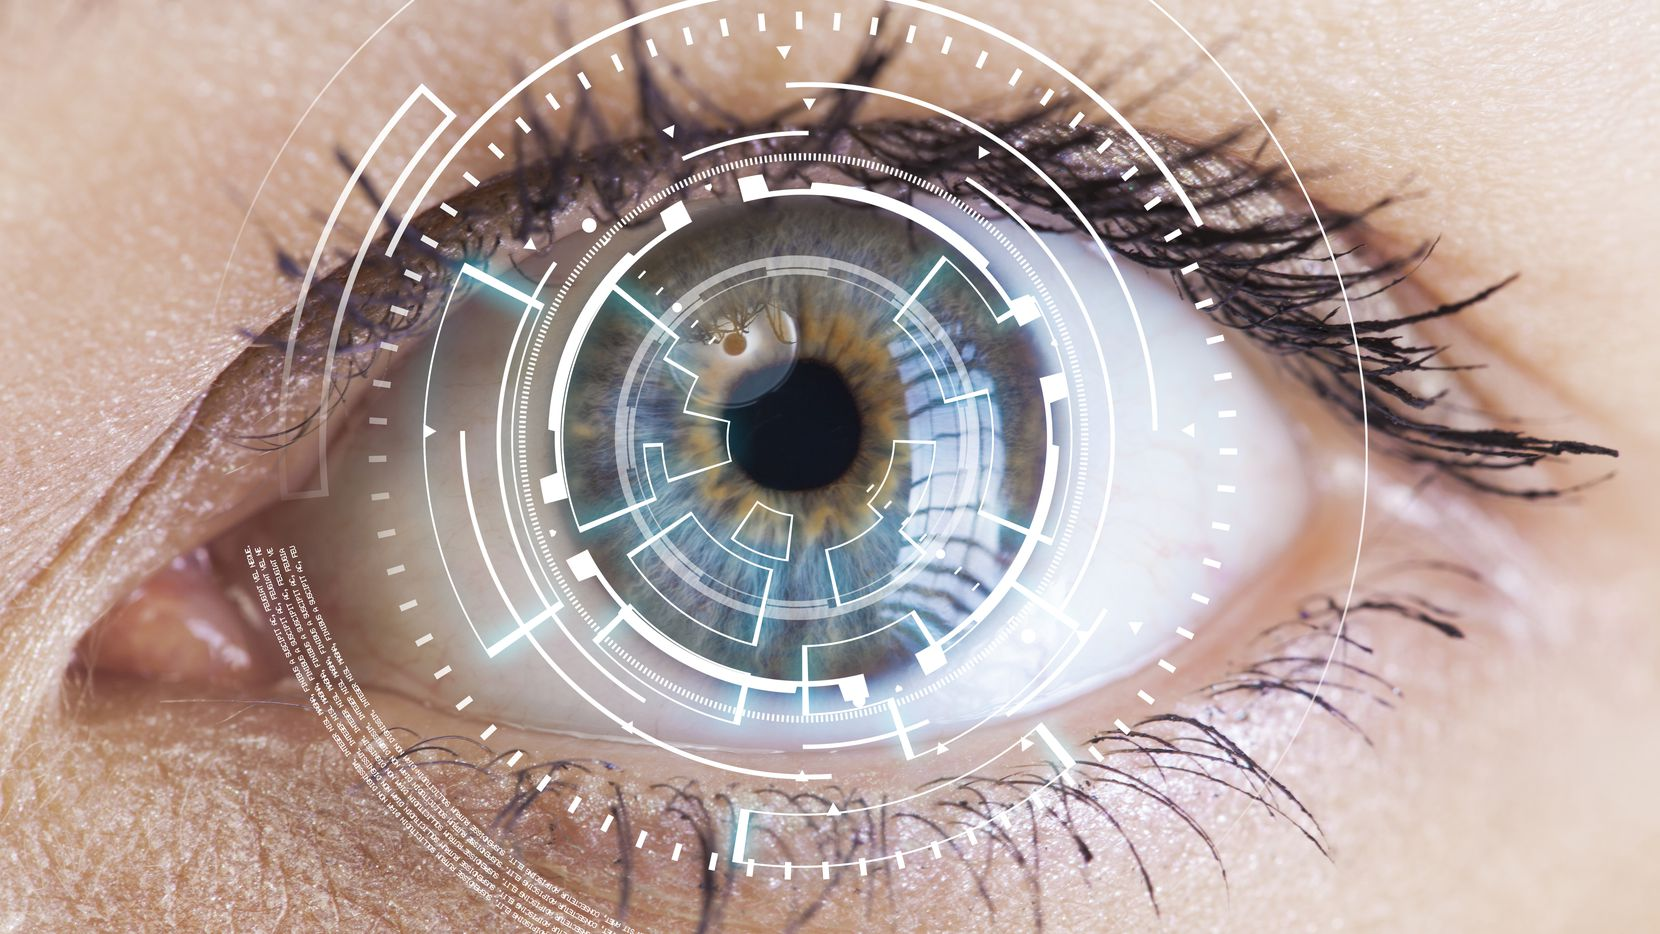 Nanoscope Therapeutics received a $2 million grant from the National Eye Institute in June 2020, and landed an undisclosed funding round a month later.